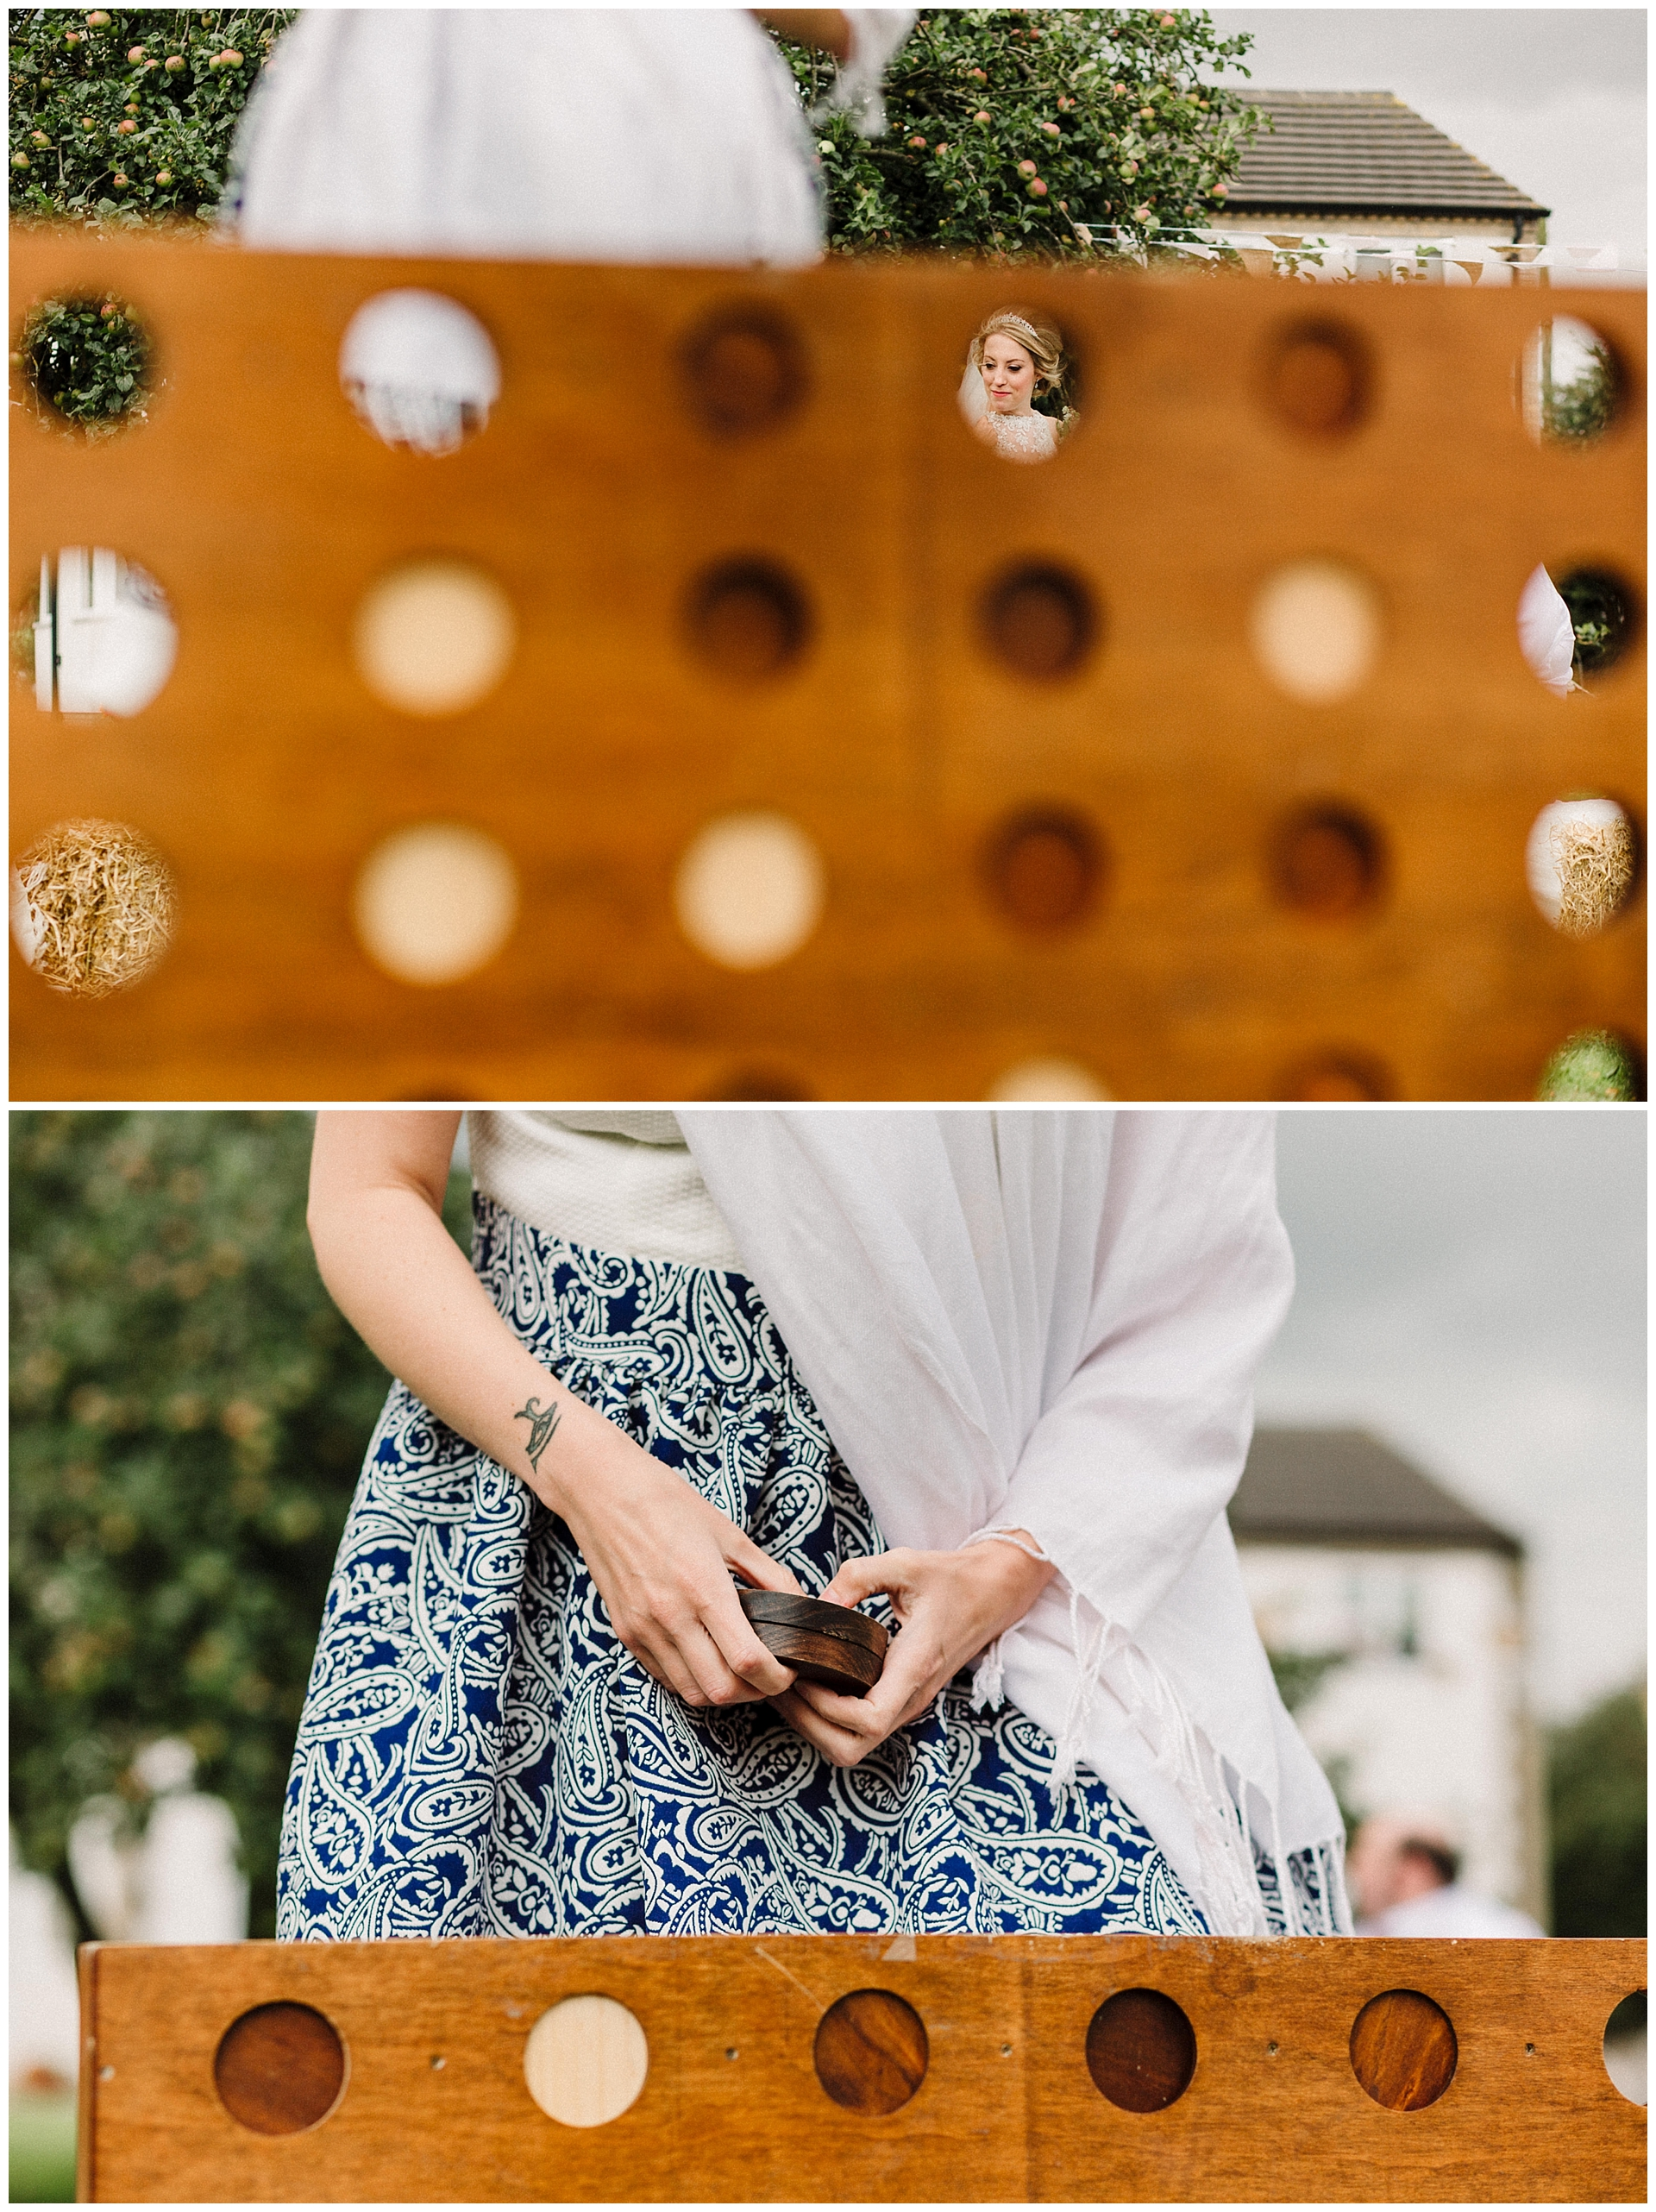 giant connect 4 wedding game.jpg